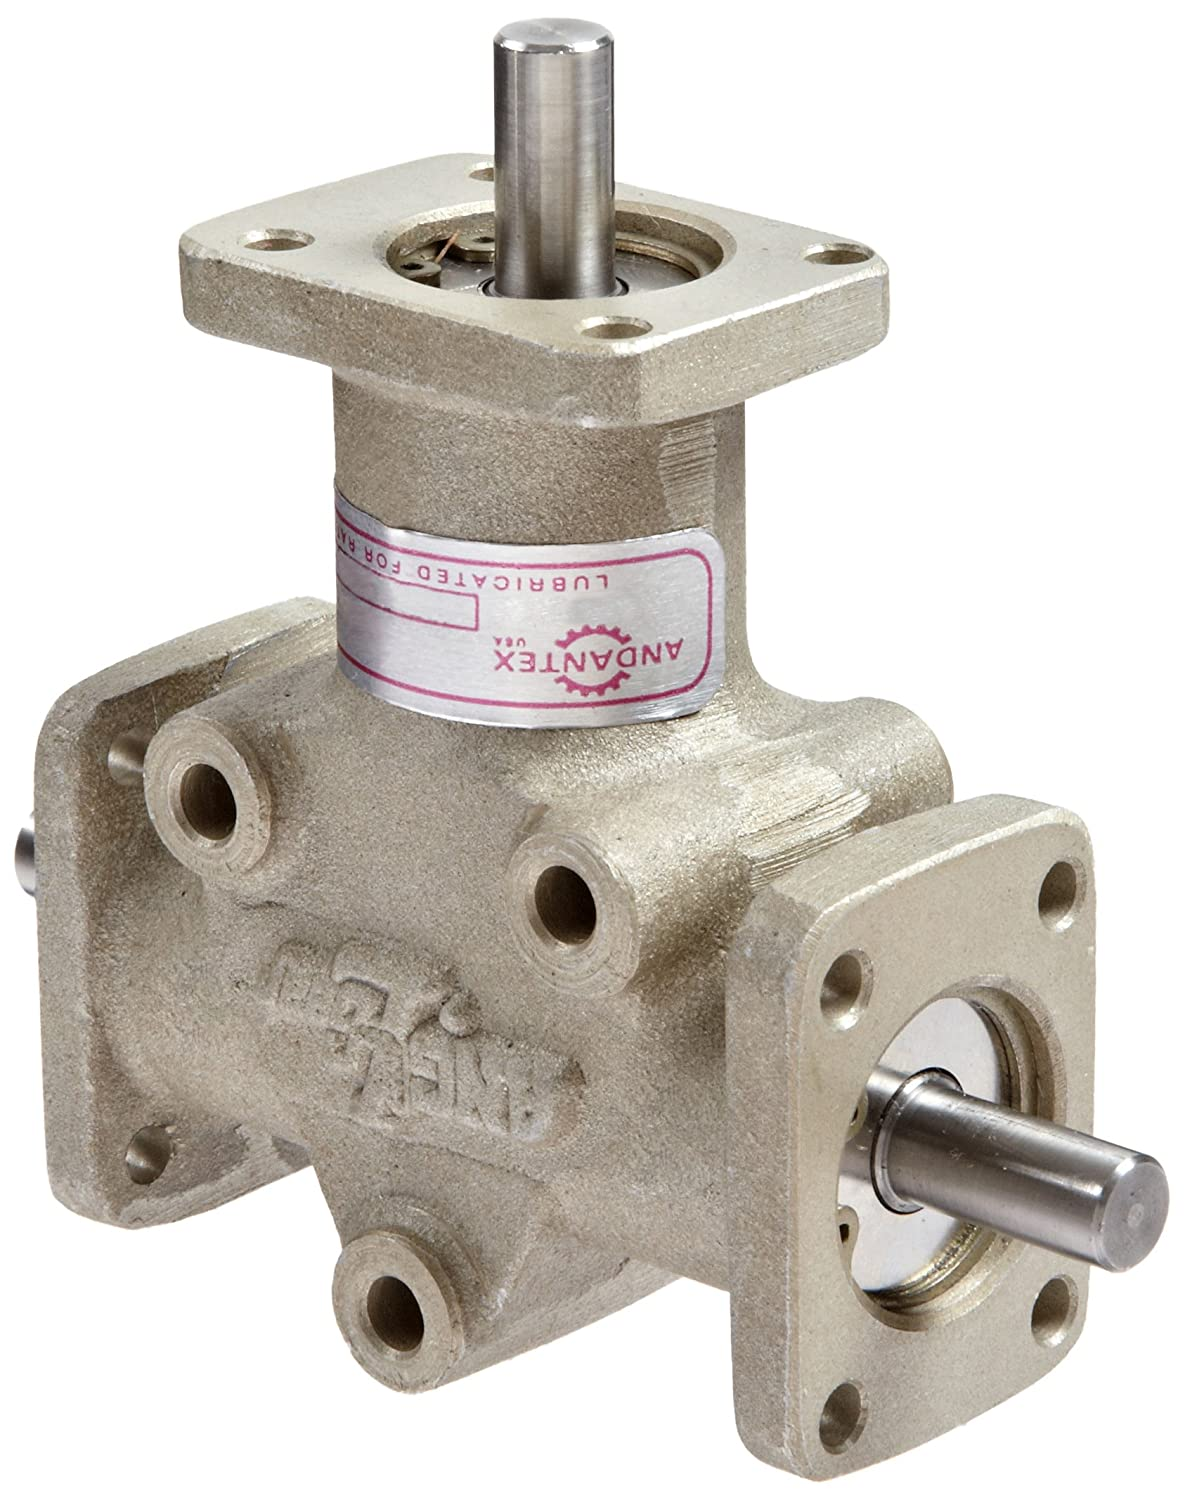 Image of Andantex R3103M Anglgear Right Angle Bevel Gear Drive, Universal Mounting, Two Output Shafts, 3 Flanges, Metric, 8mm Shaft Diameter, 1:1 Ratio.41 kW at 1750rpm Gearheads & Speed Reducers